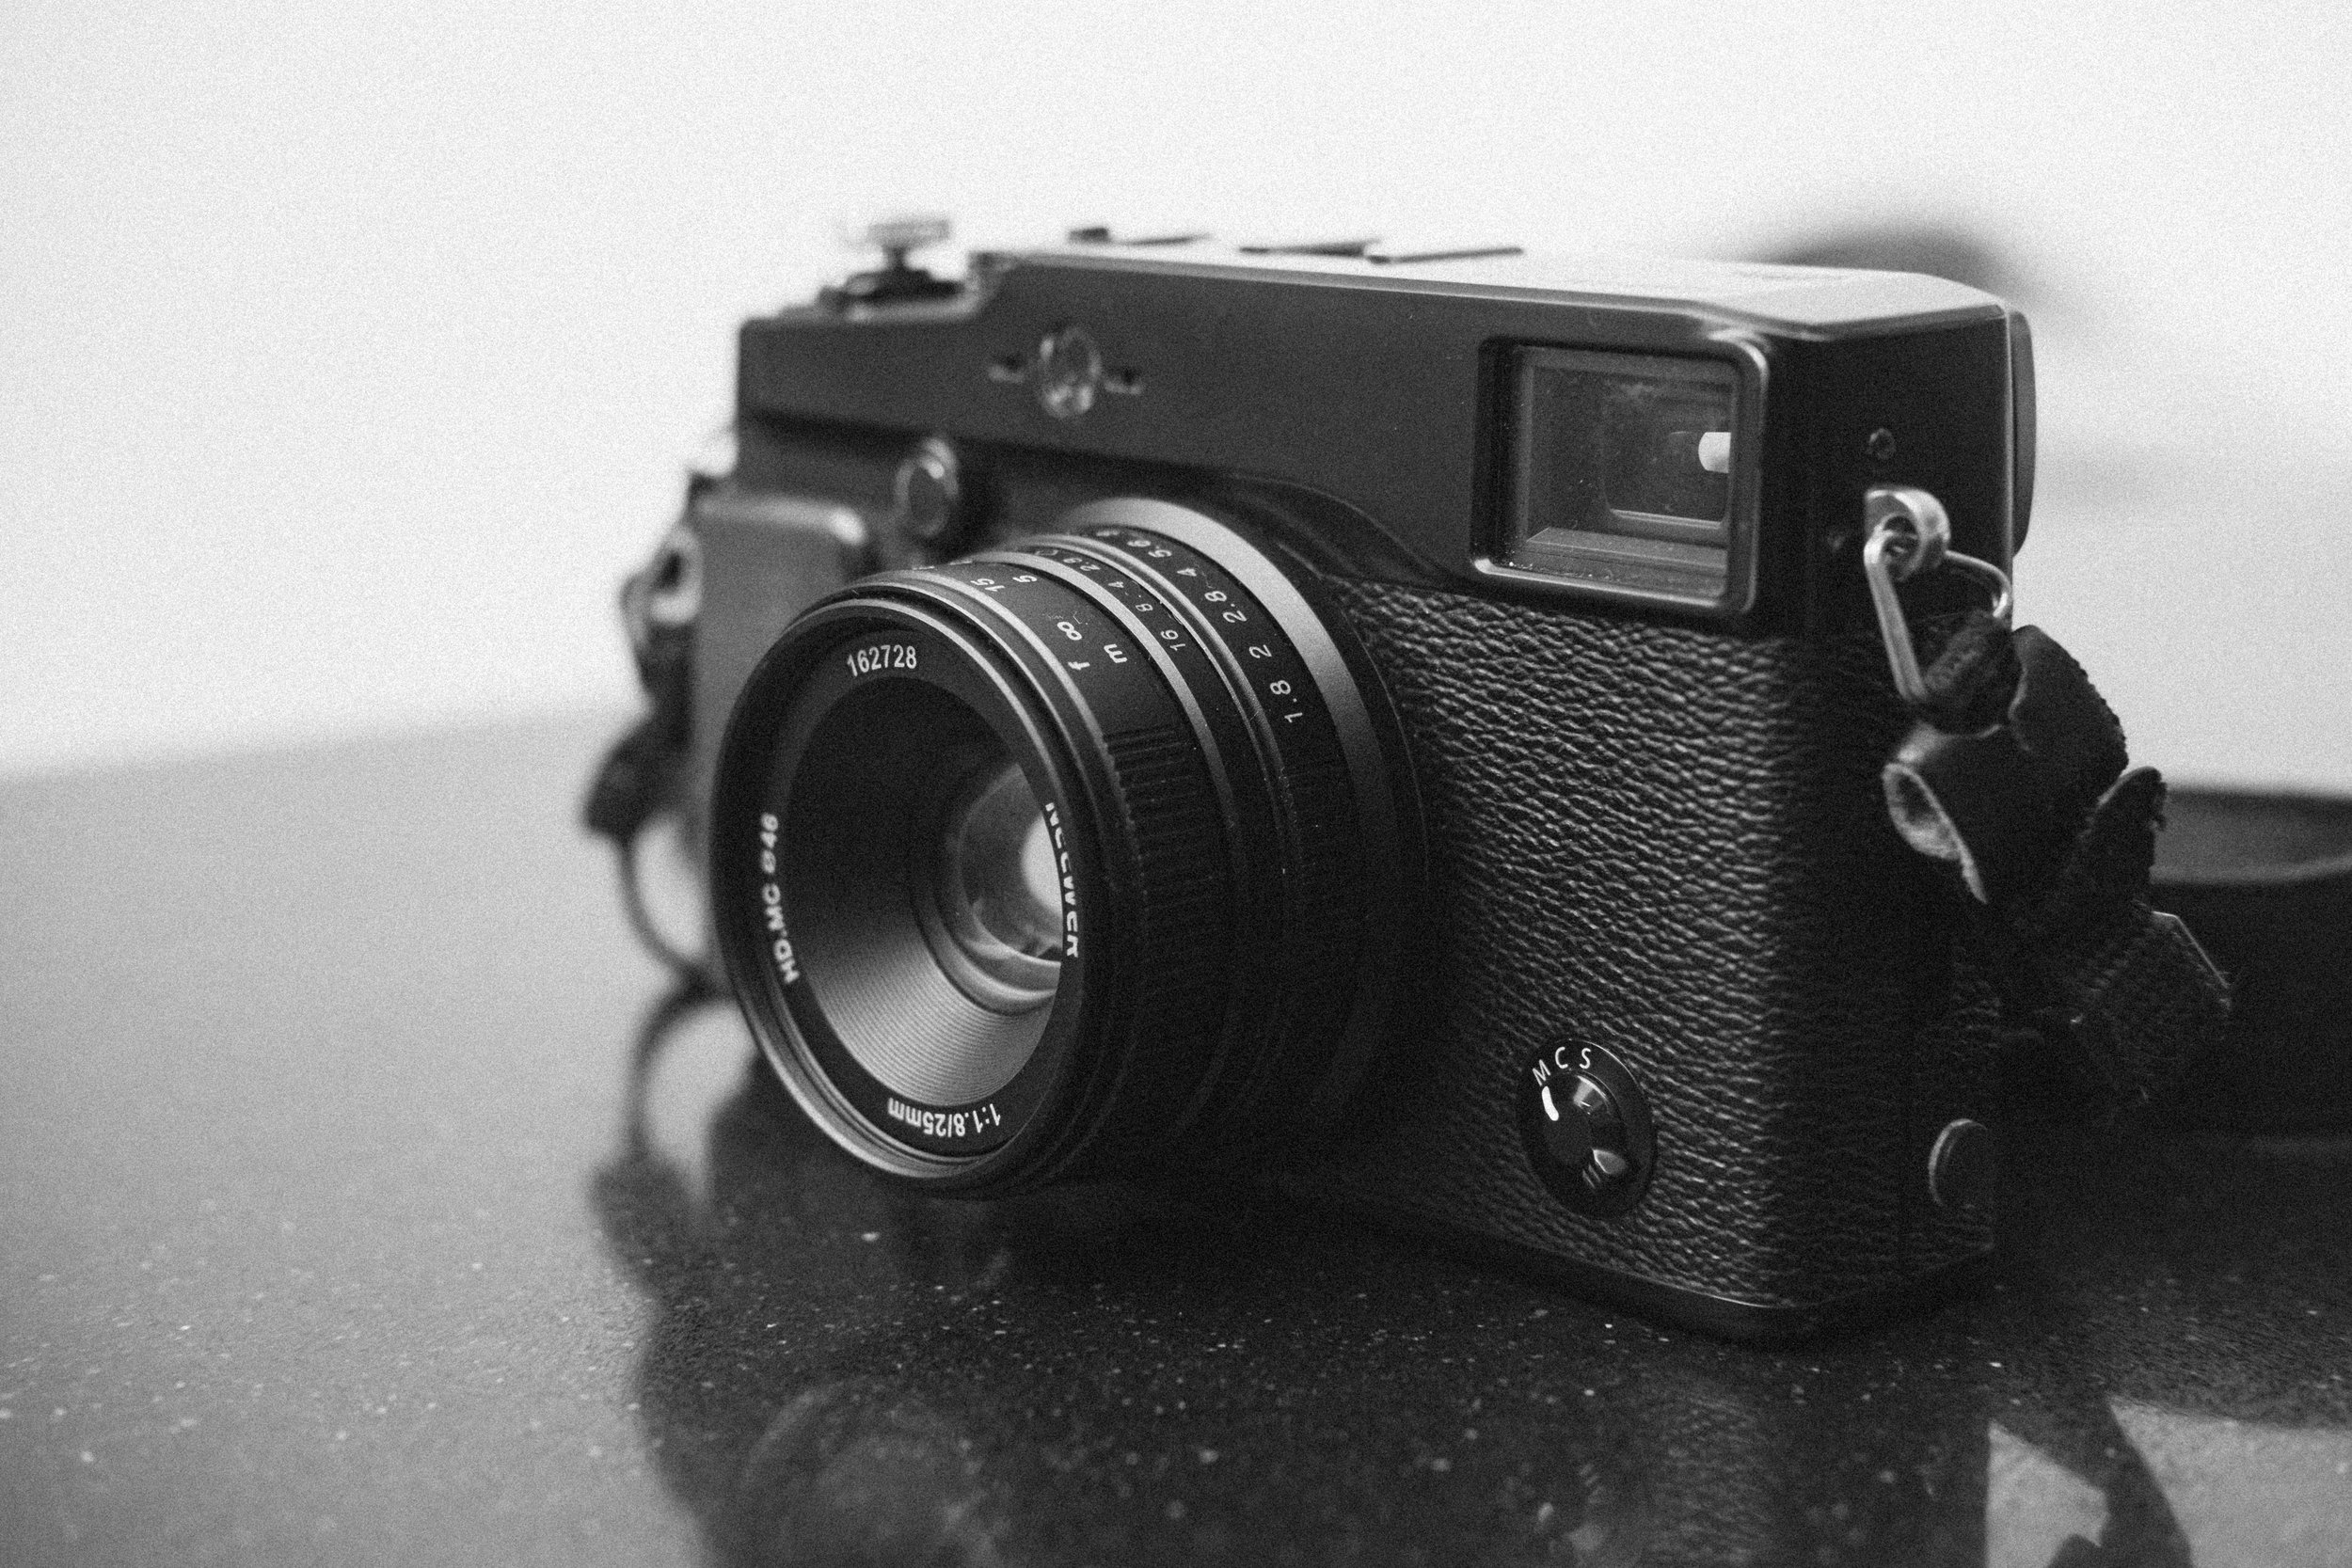 Neewer 25mm f1.8 mounted to a Fujifilm X-Pro1